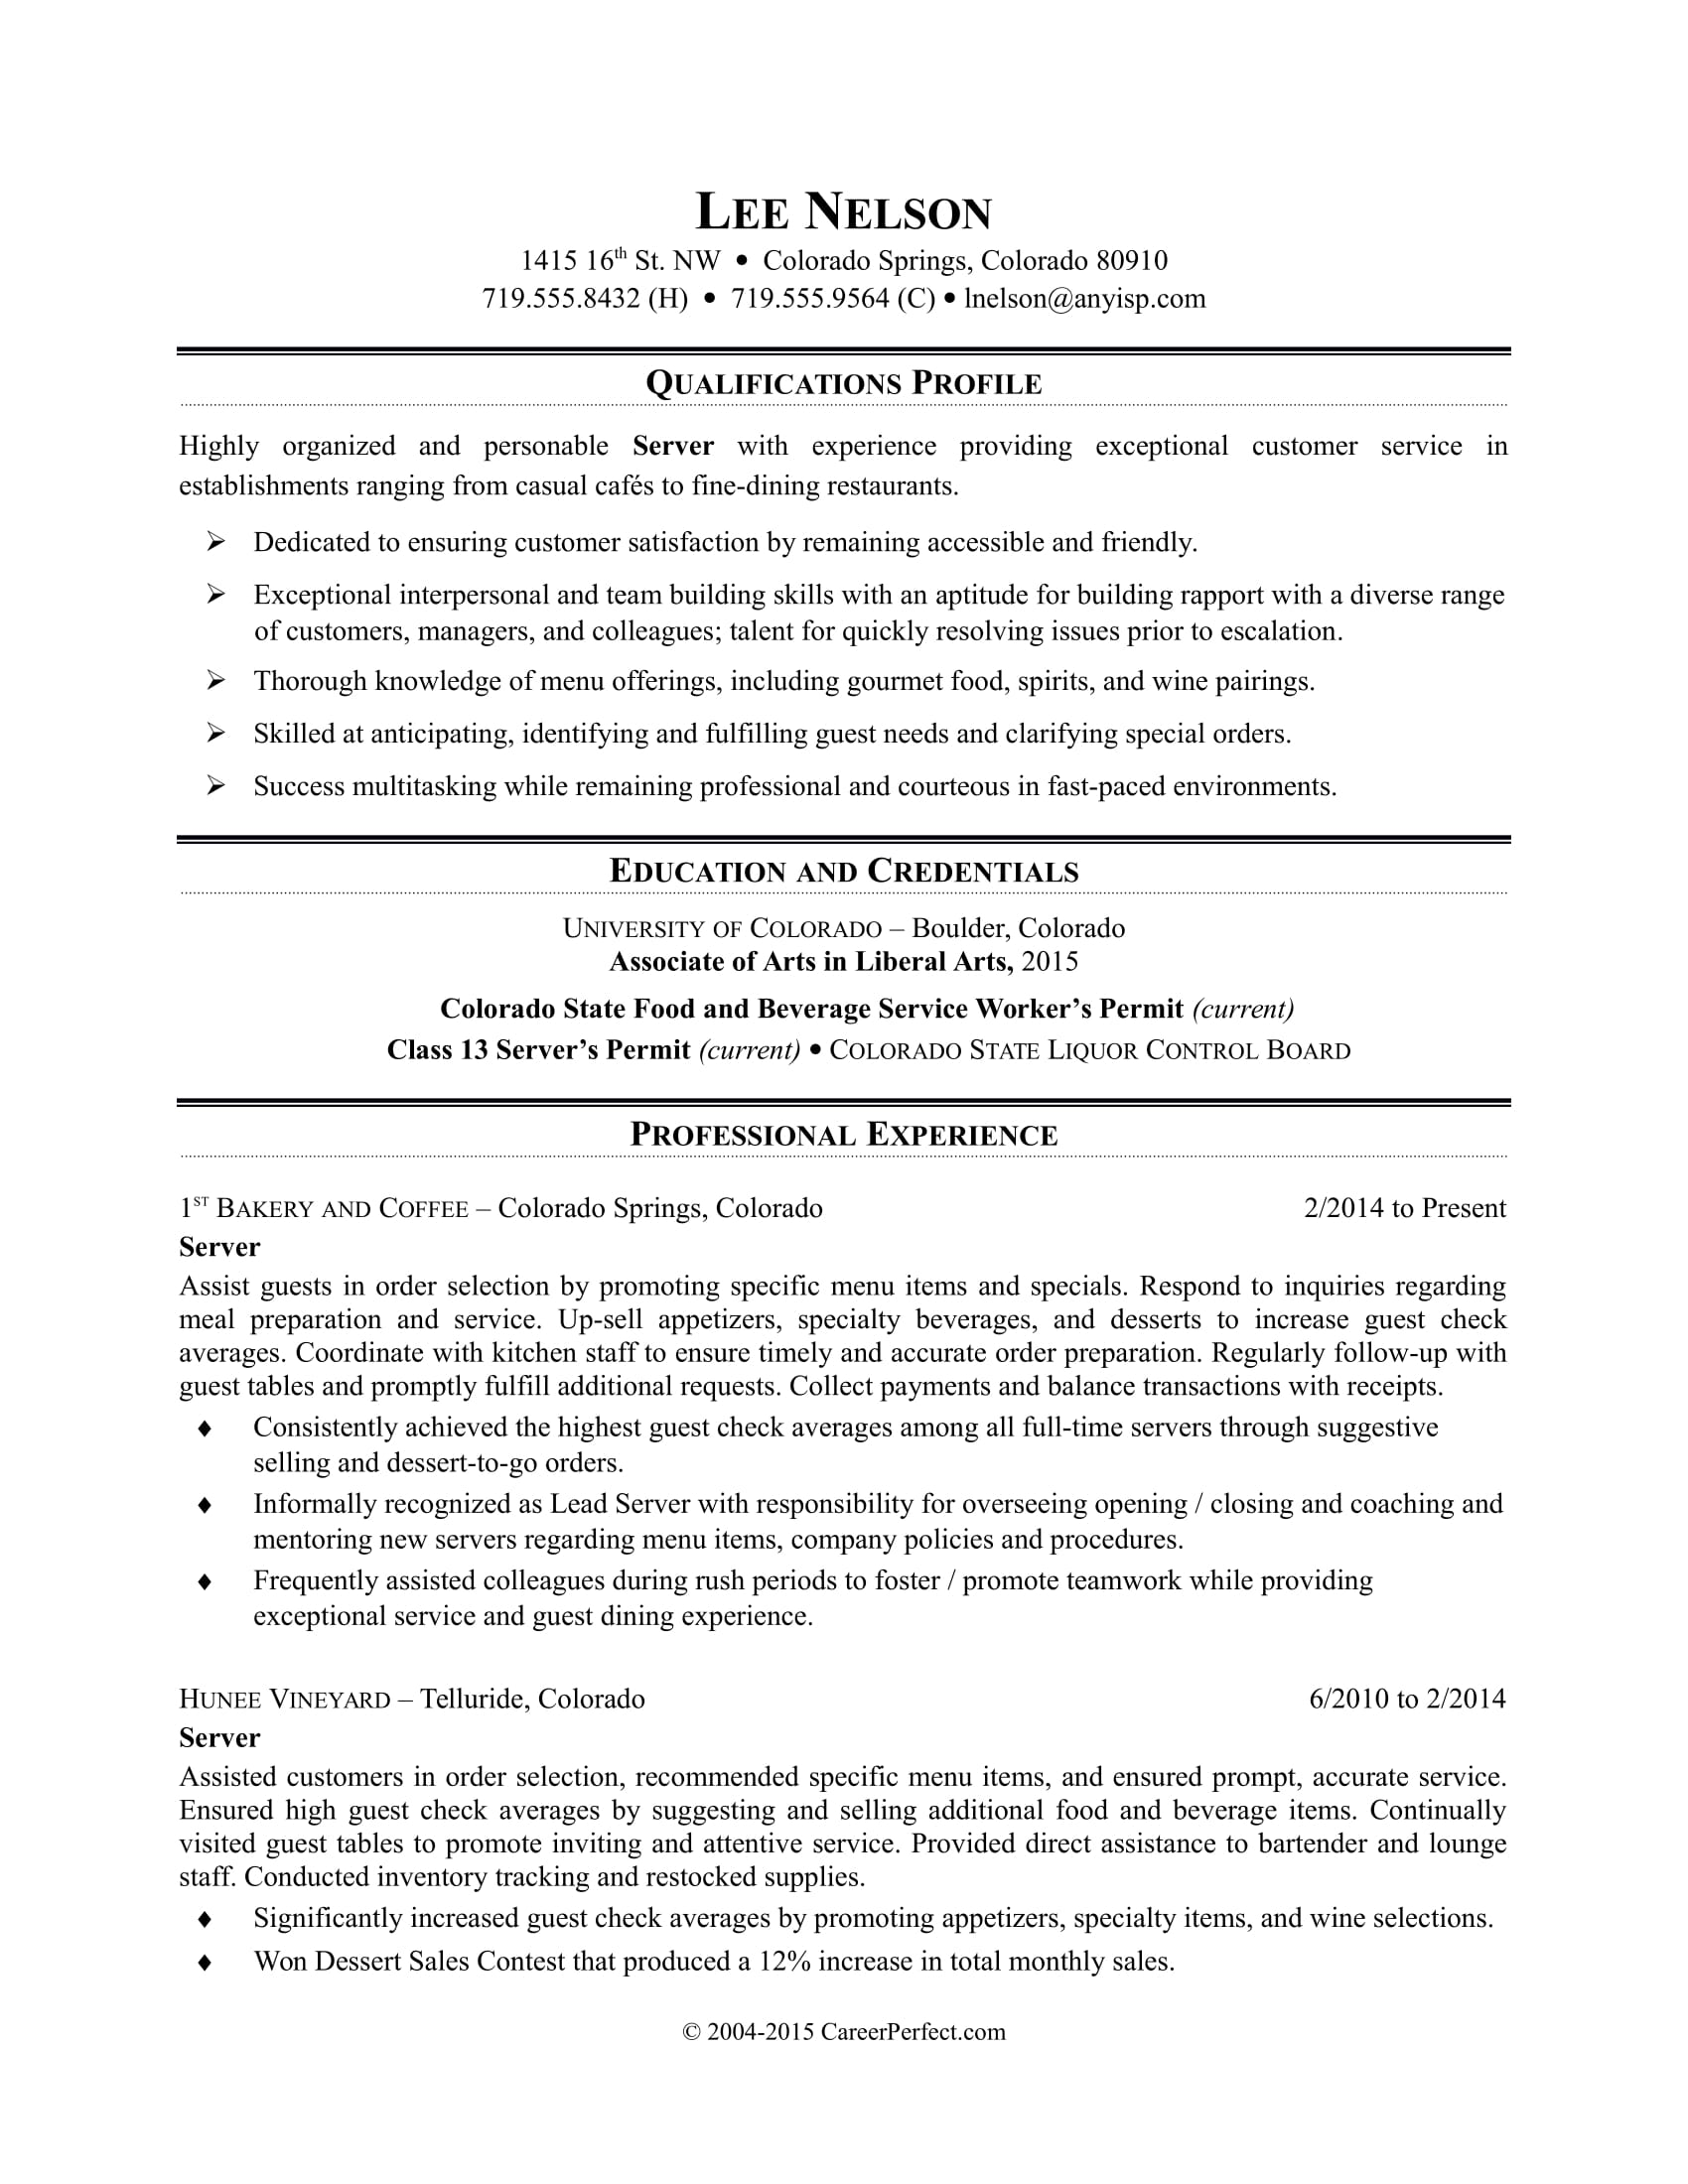 Sample Resume For A Restaurant Server  Qualifications On A Resume